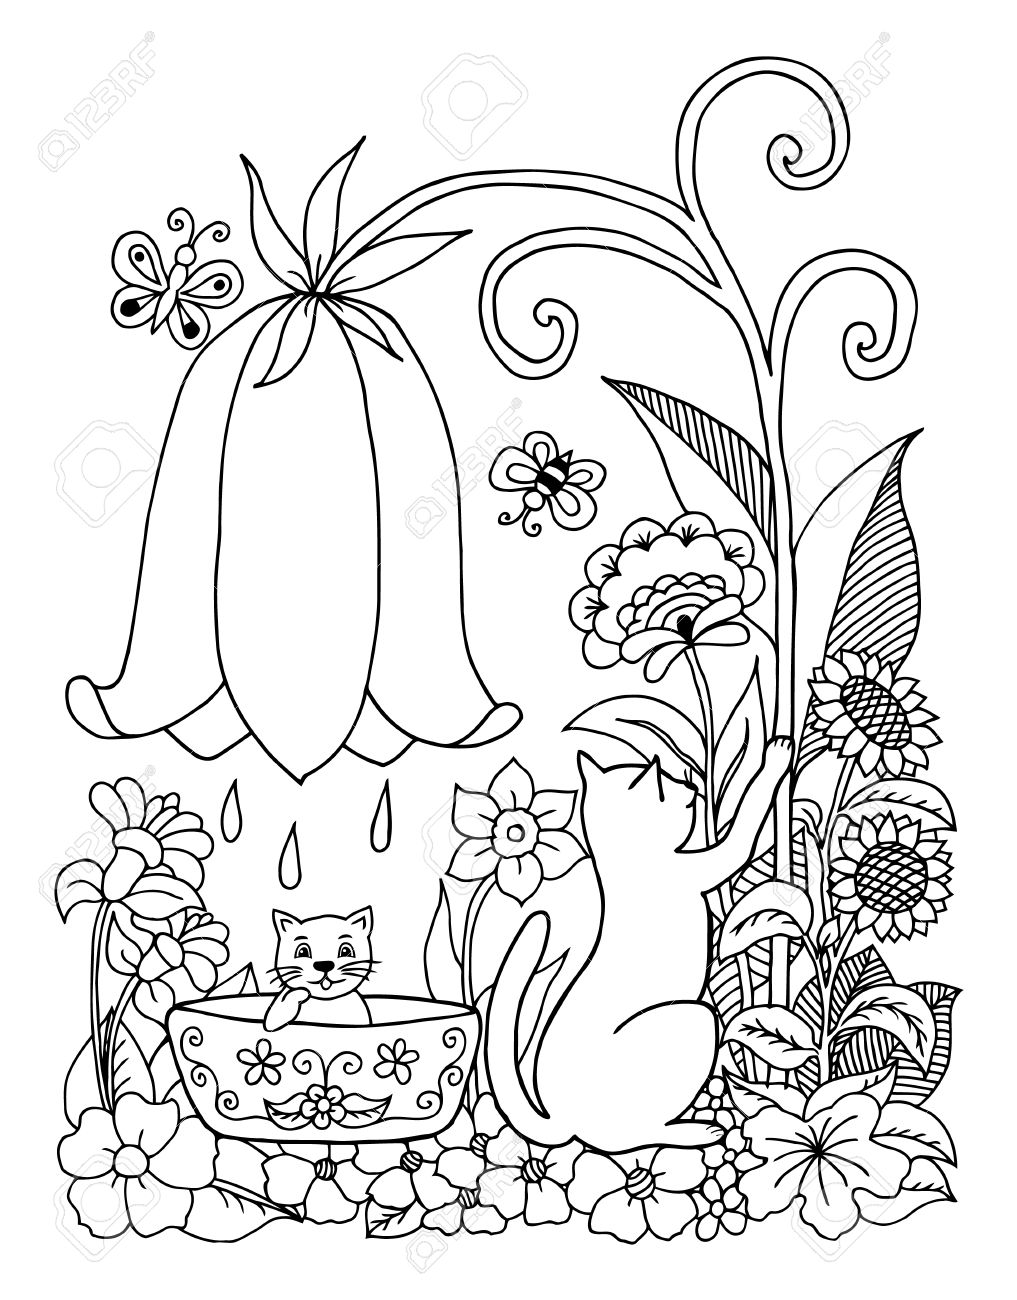 1017x1300 Illustration A Cat Bathes The A Kitten On Nature. Doodle Drawing